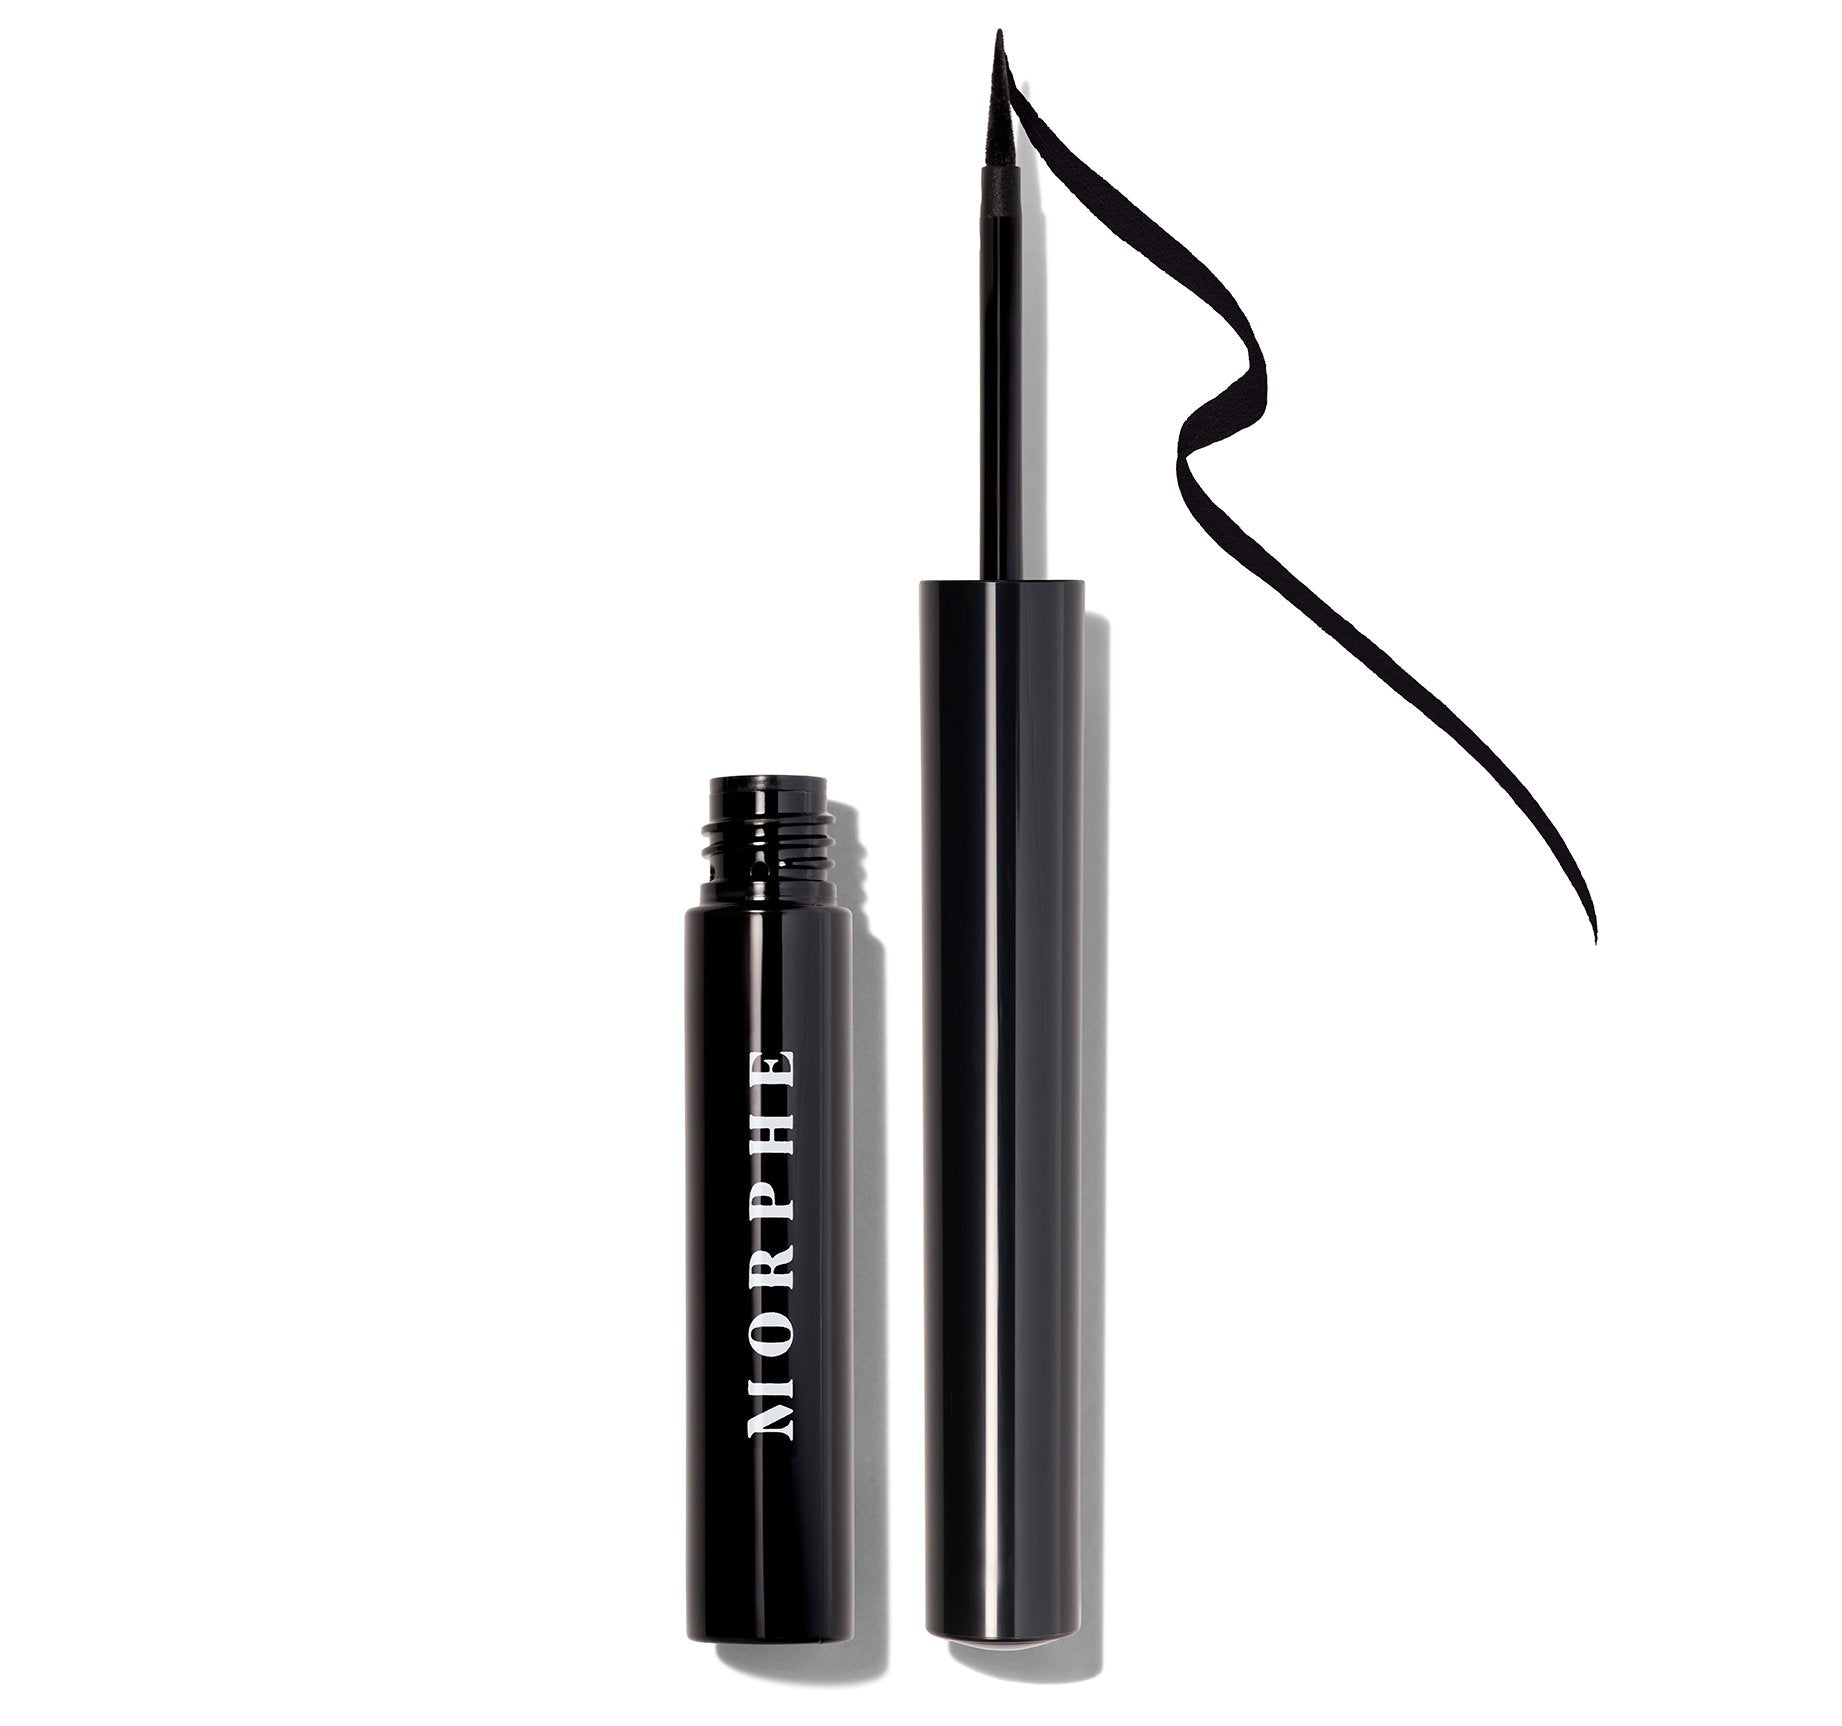 LIQUID LINER - BLACK OUT, view larger image